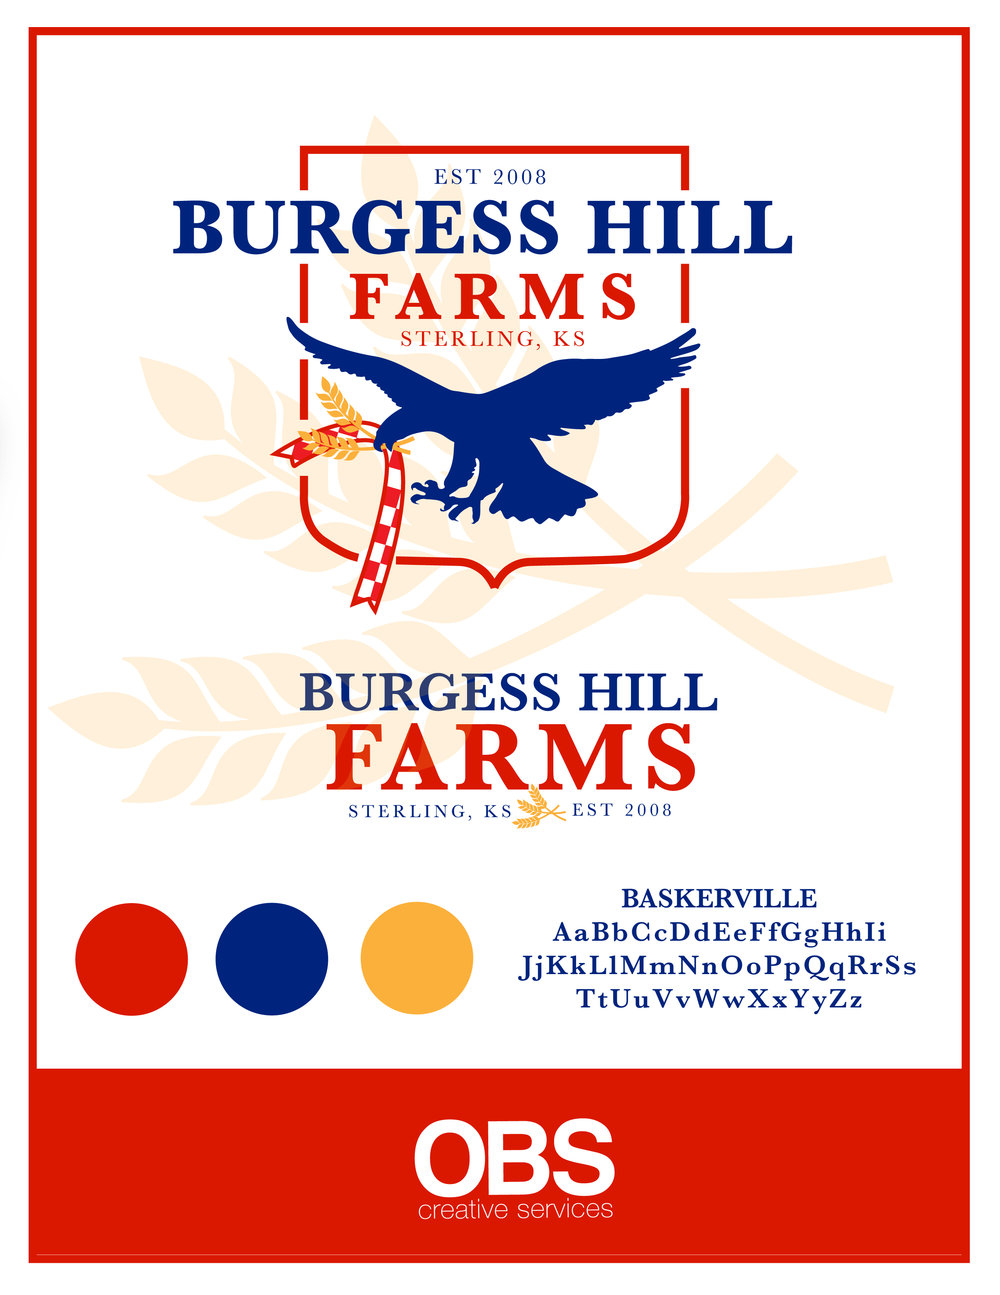 Burgess Hill Farms.jpg